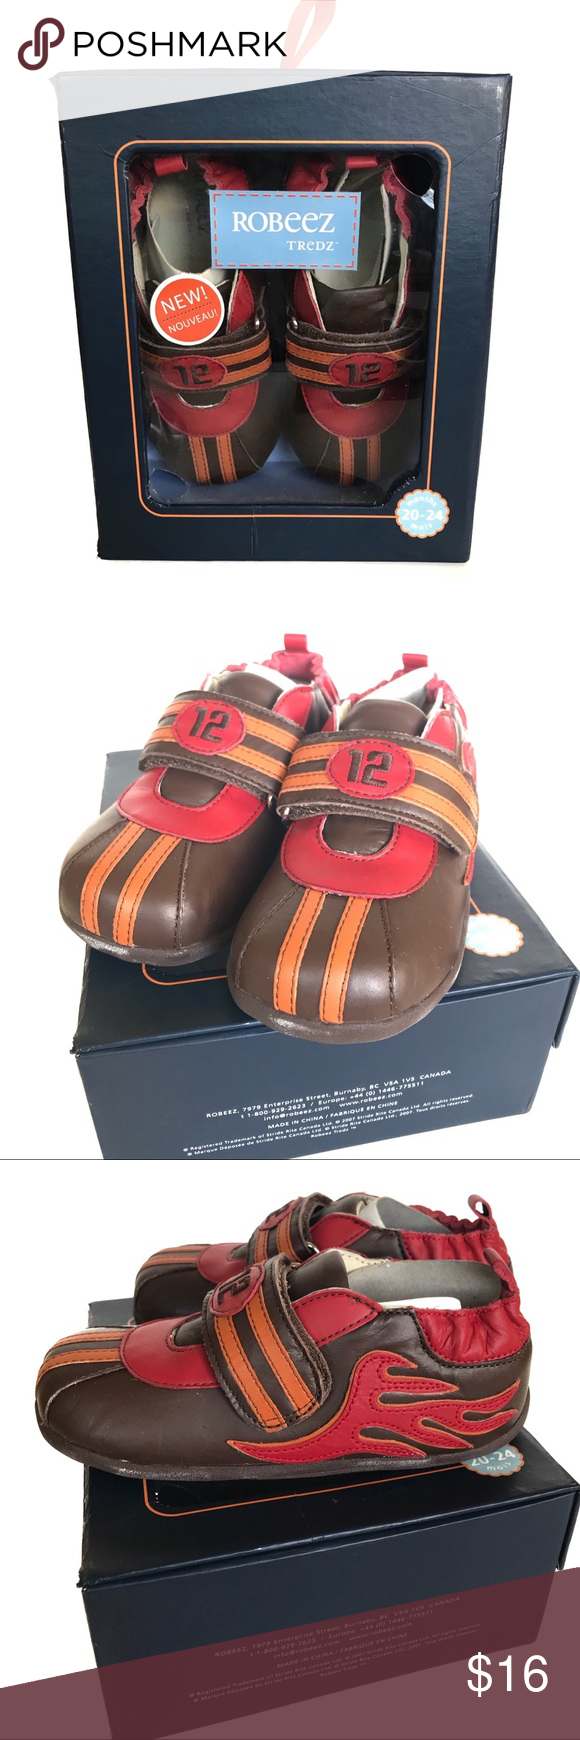 Robeez Tredz Brown Flames Shoes Size 7 8 With Images Robeez Robeez Shoes Brown